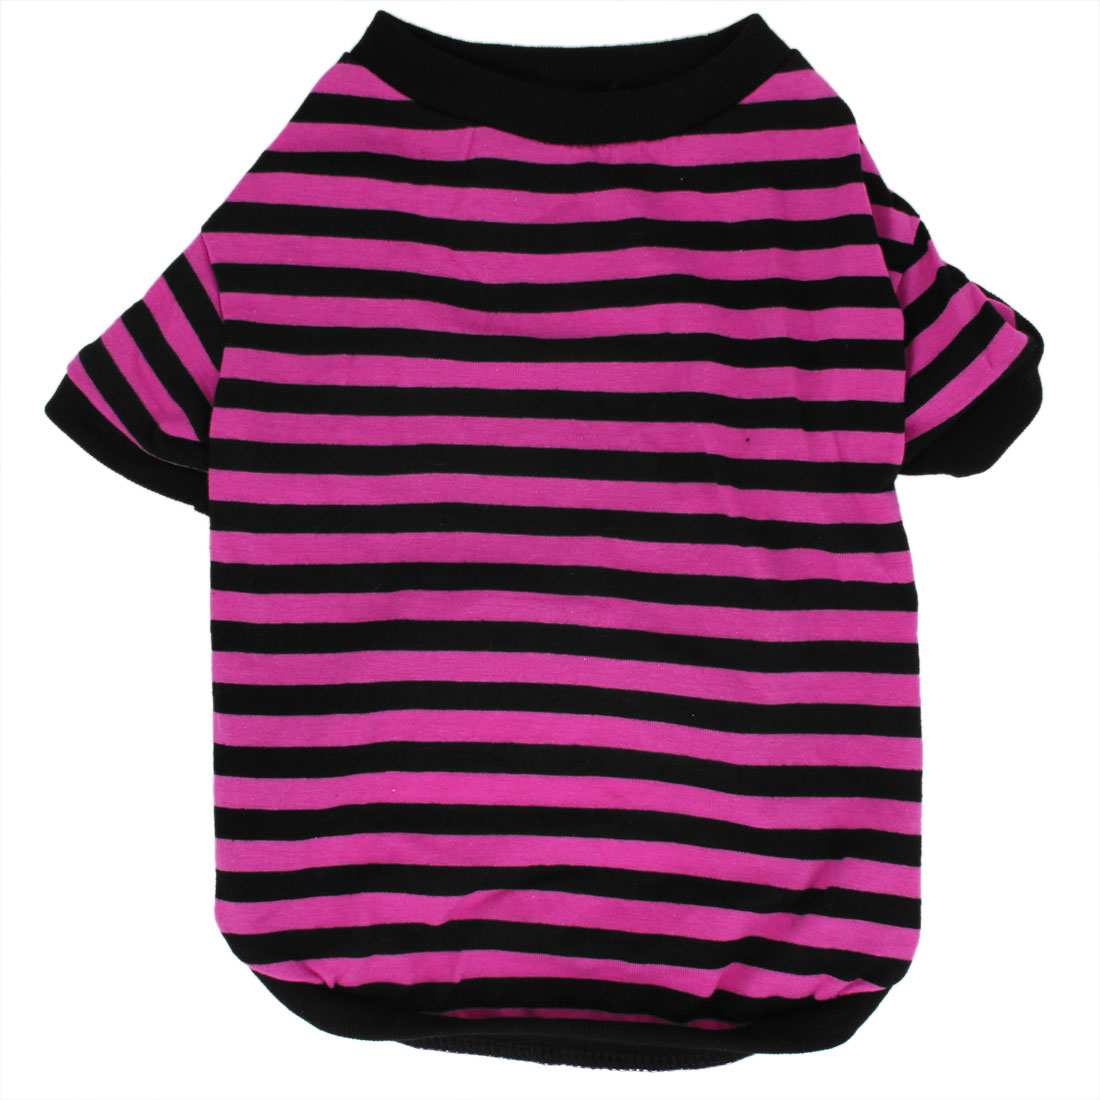 Chiffon Stripe Printed Tee Shirt Dress Fuchsia Black M for Pet Dog Doggy